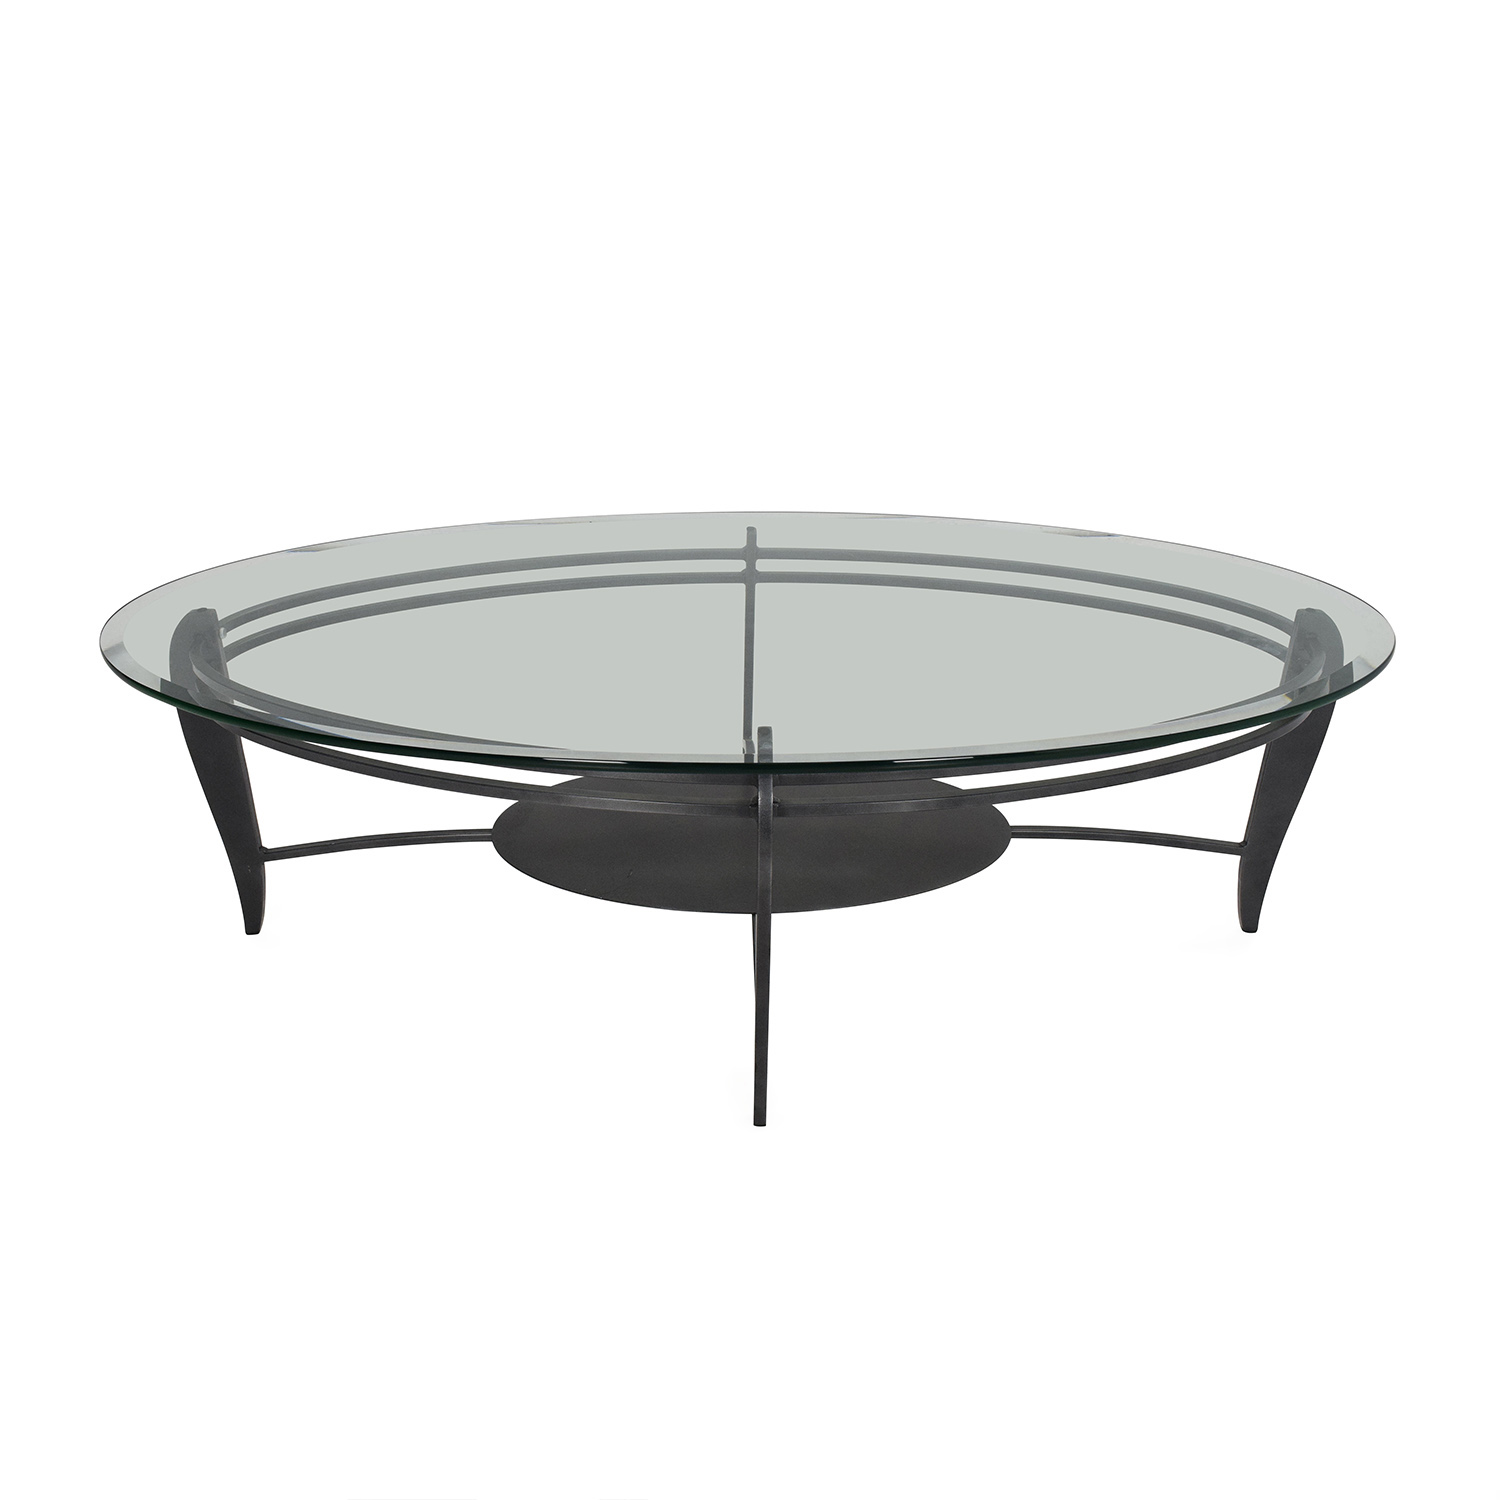 CB2 CB2 Glass Coffee Table used